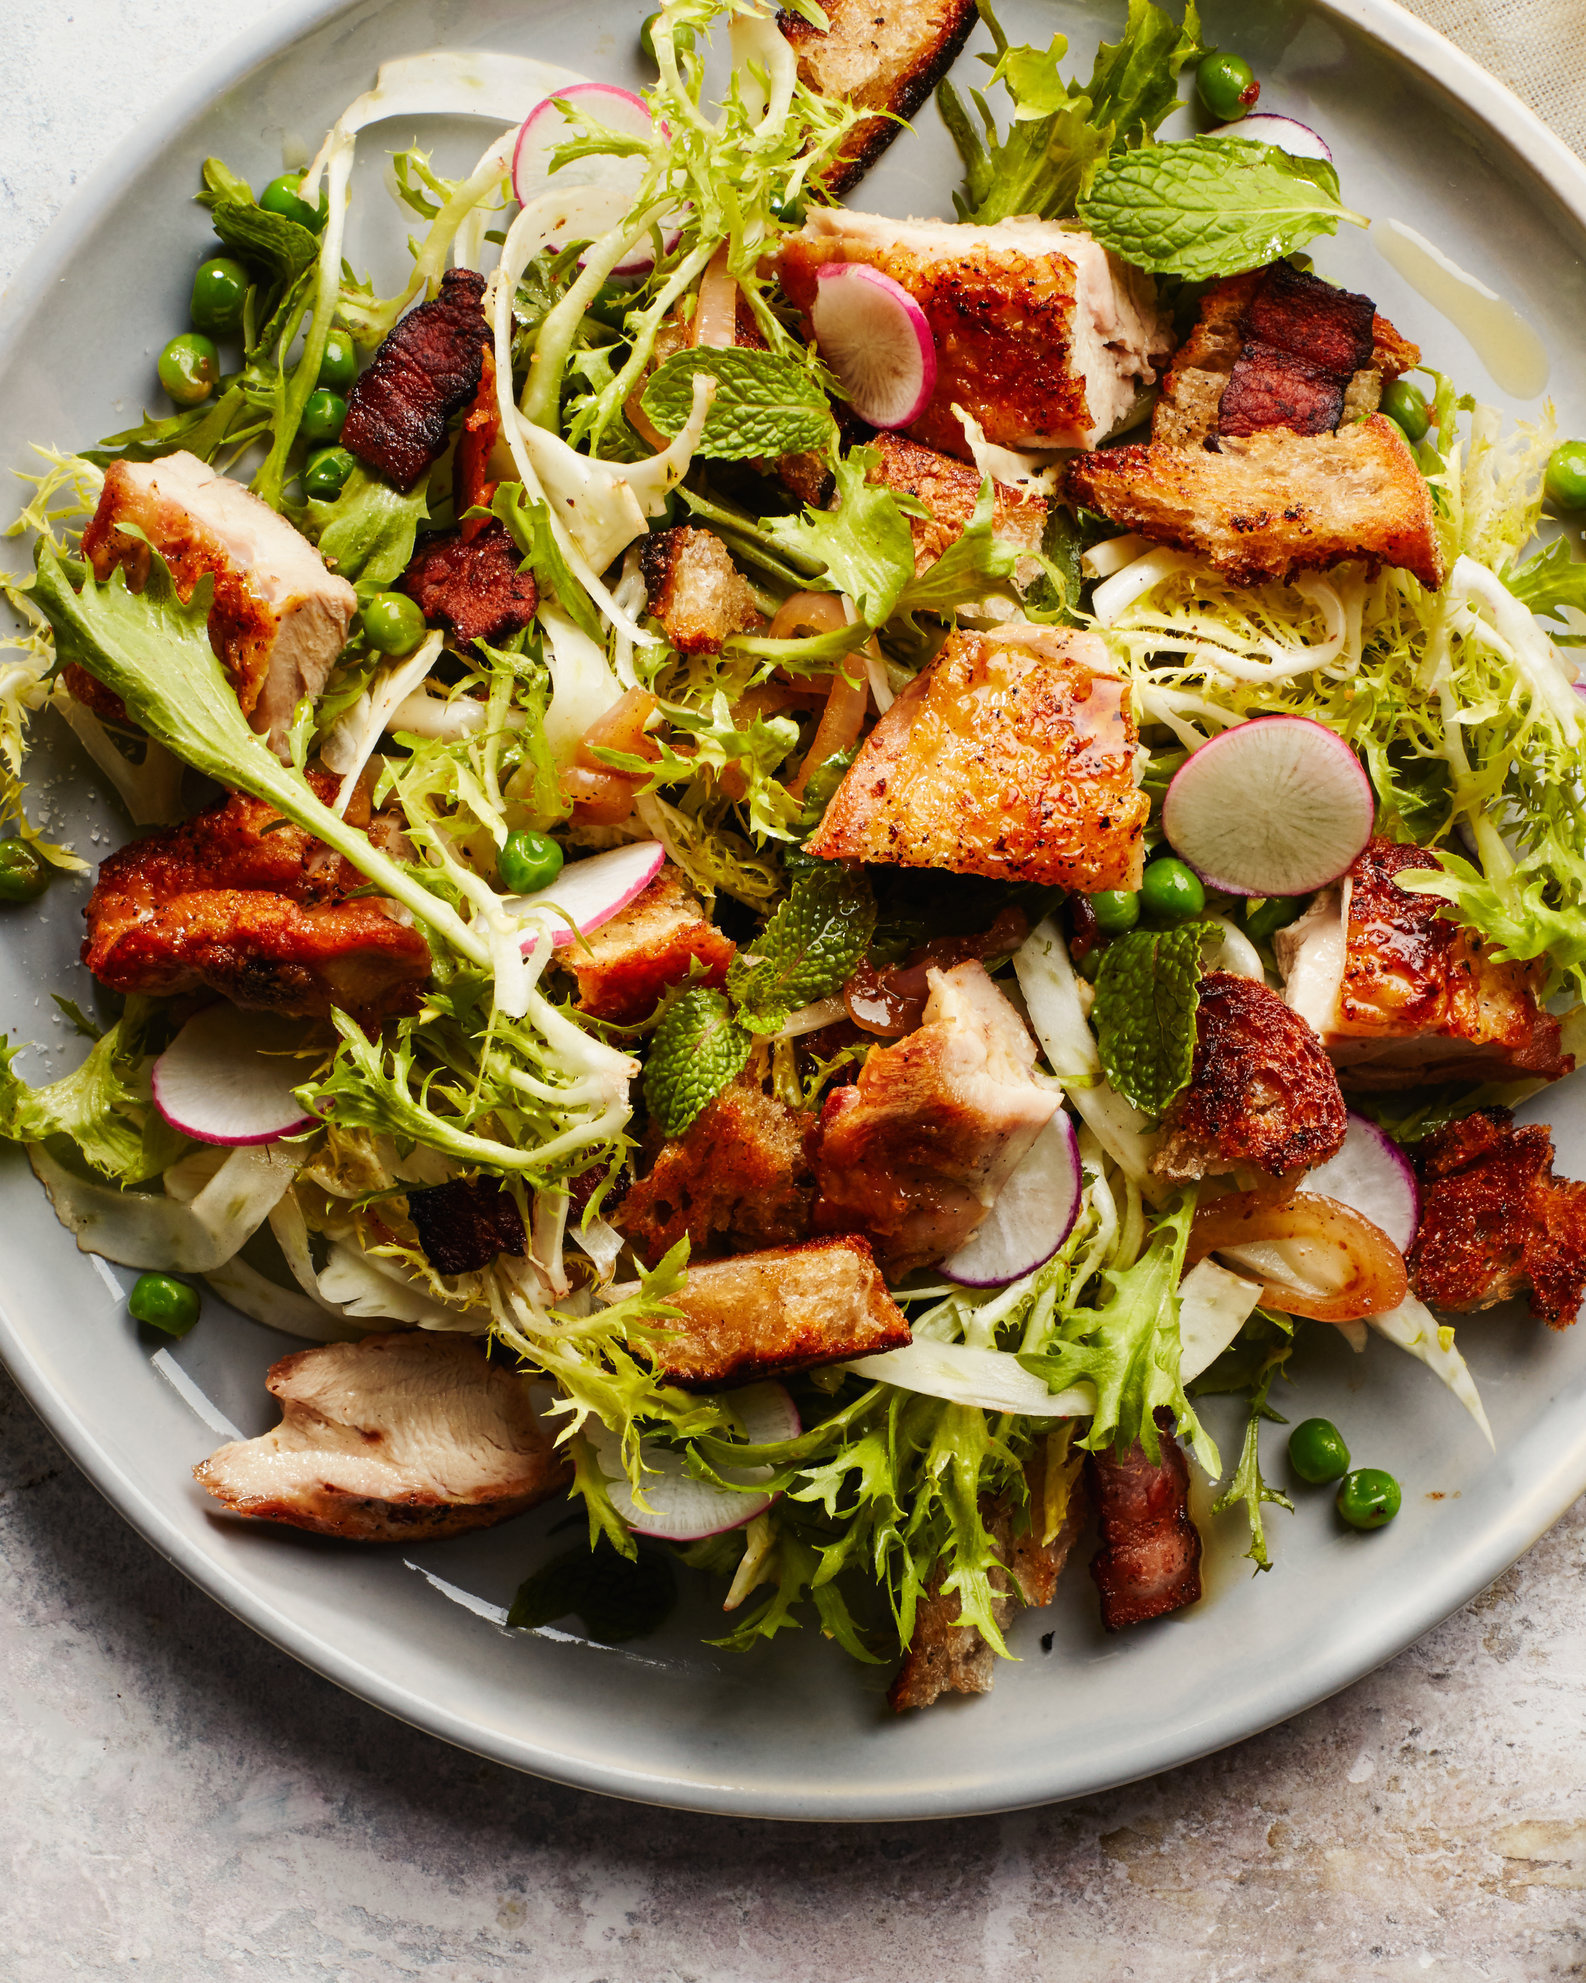 Spring-Salad-with-Crispy-Chicken-and-Bacony-Croutons-26042017.jpg